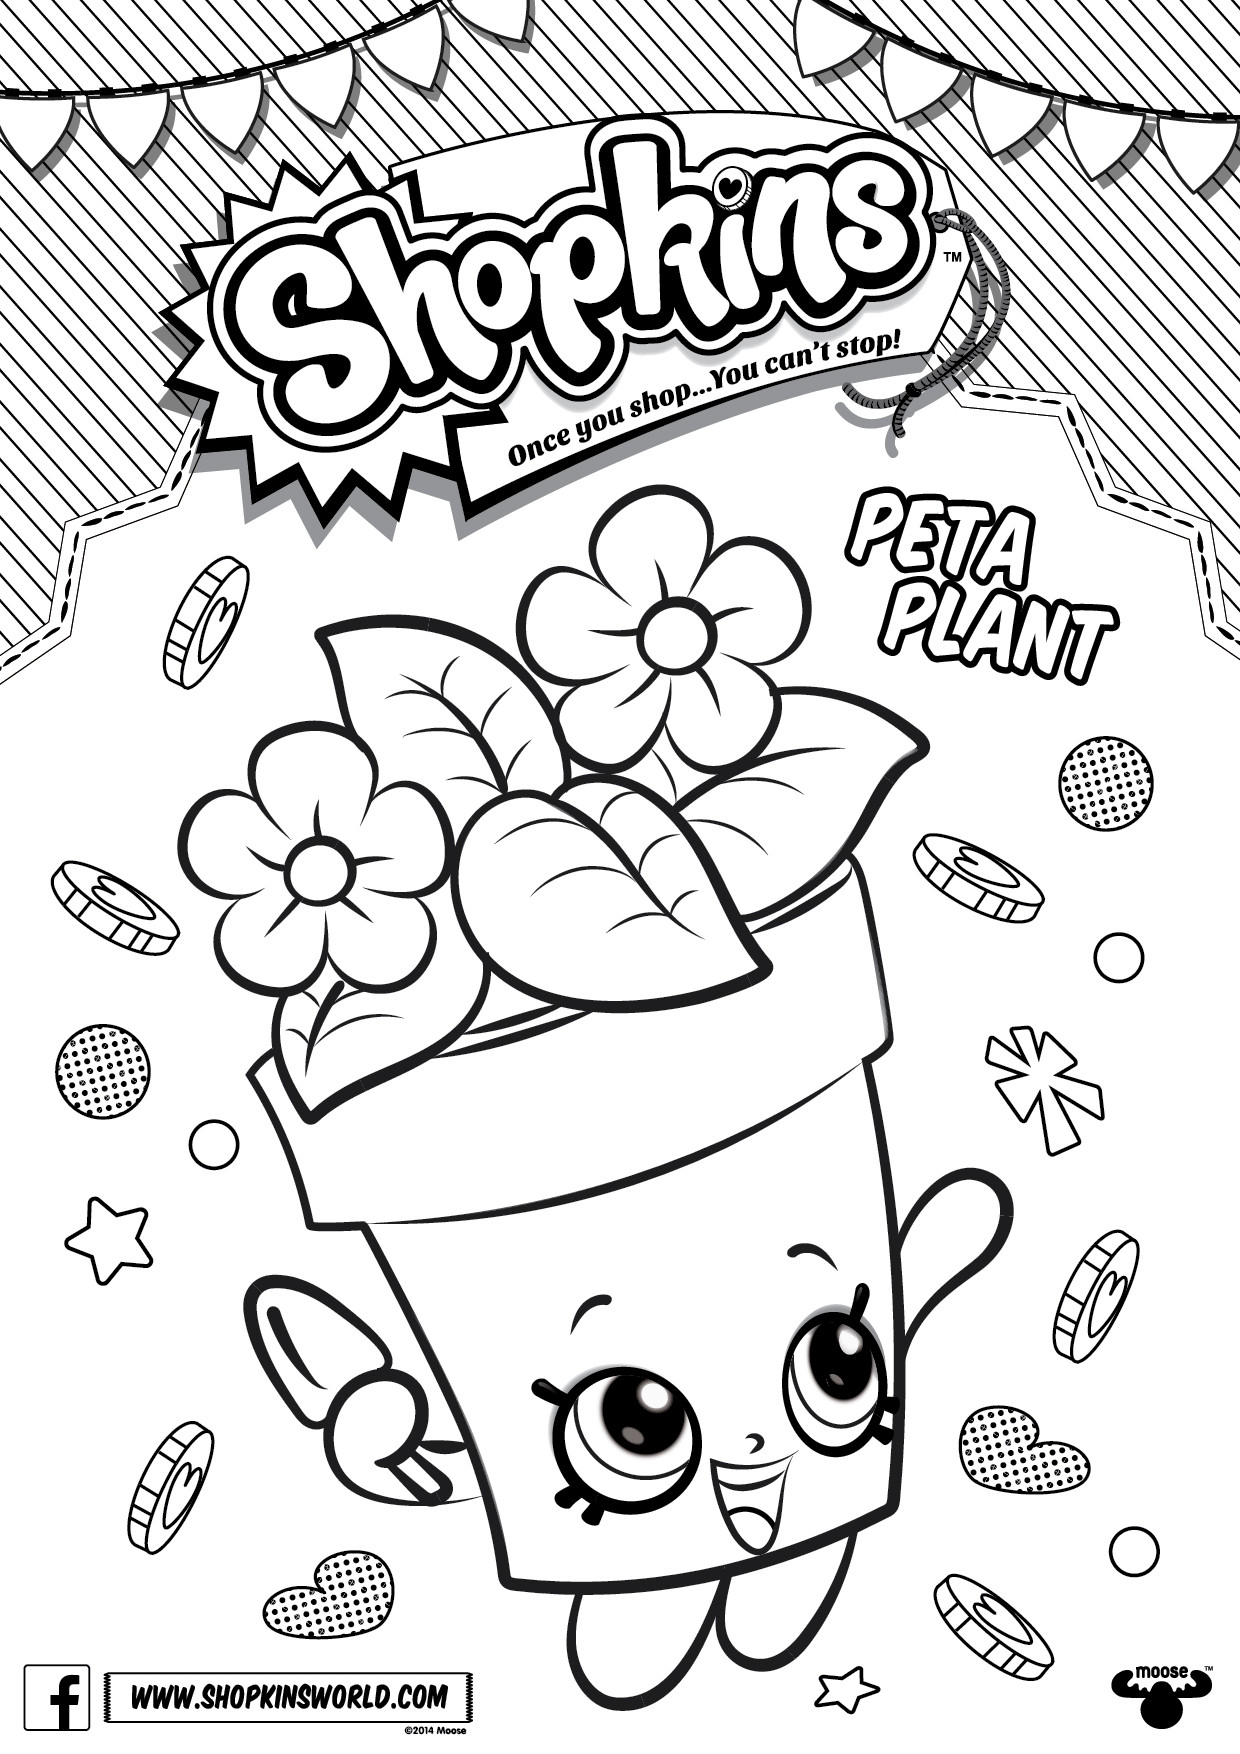 1240x1754 Shopkins Coloring Pages To Print Free Printable Shopkins